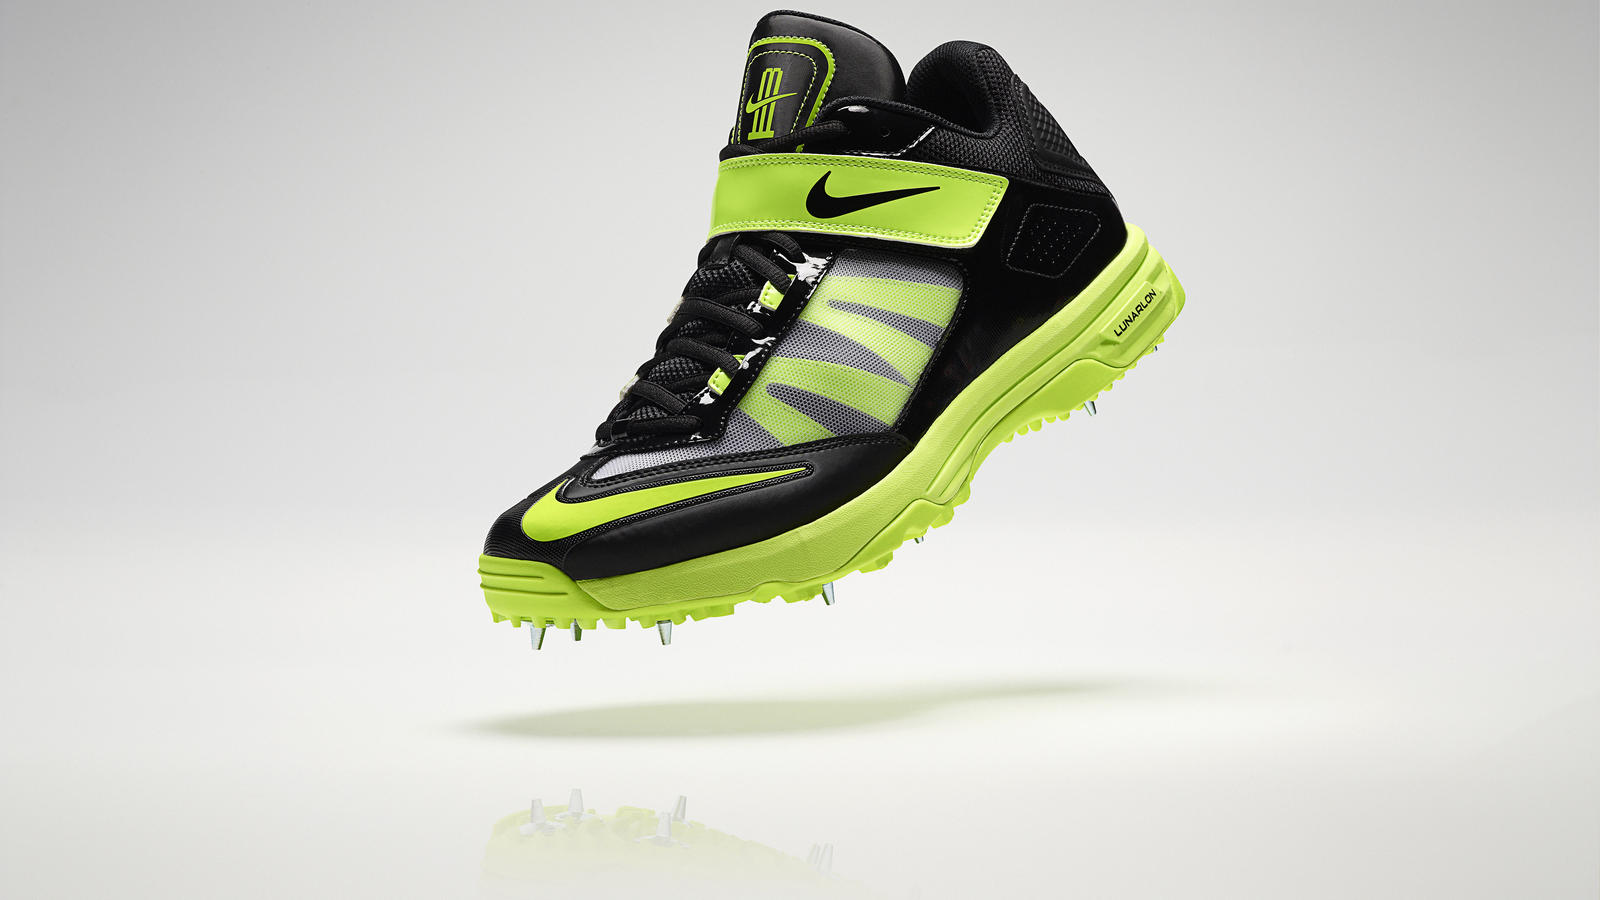 New Launch Nike Shoes In India